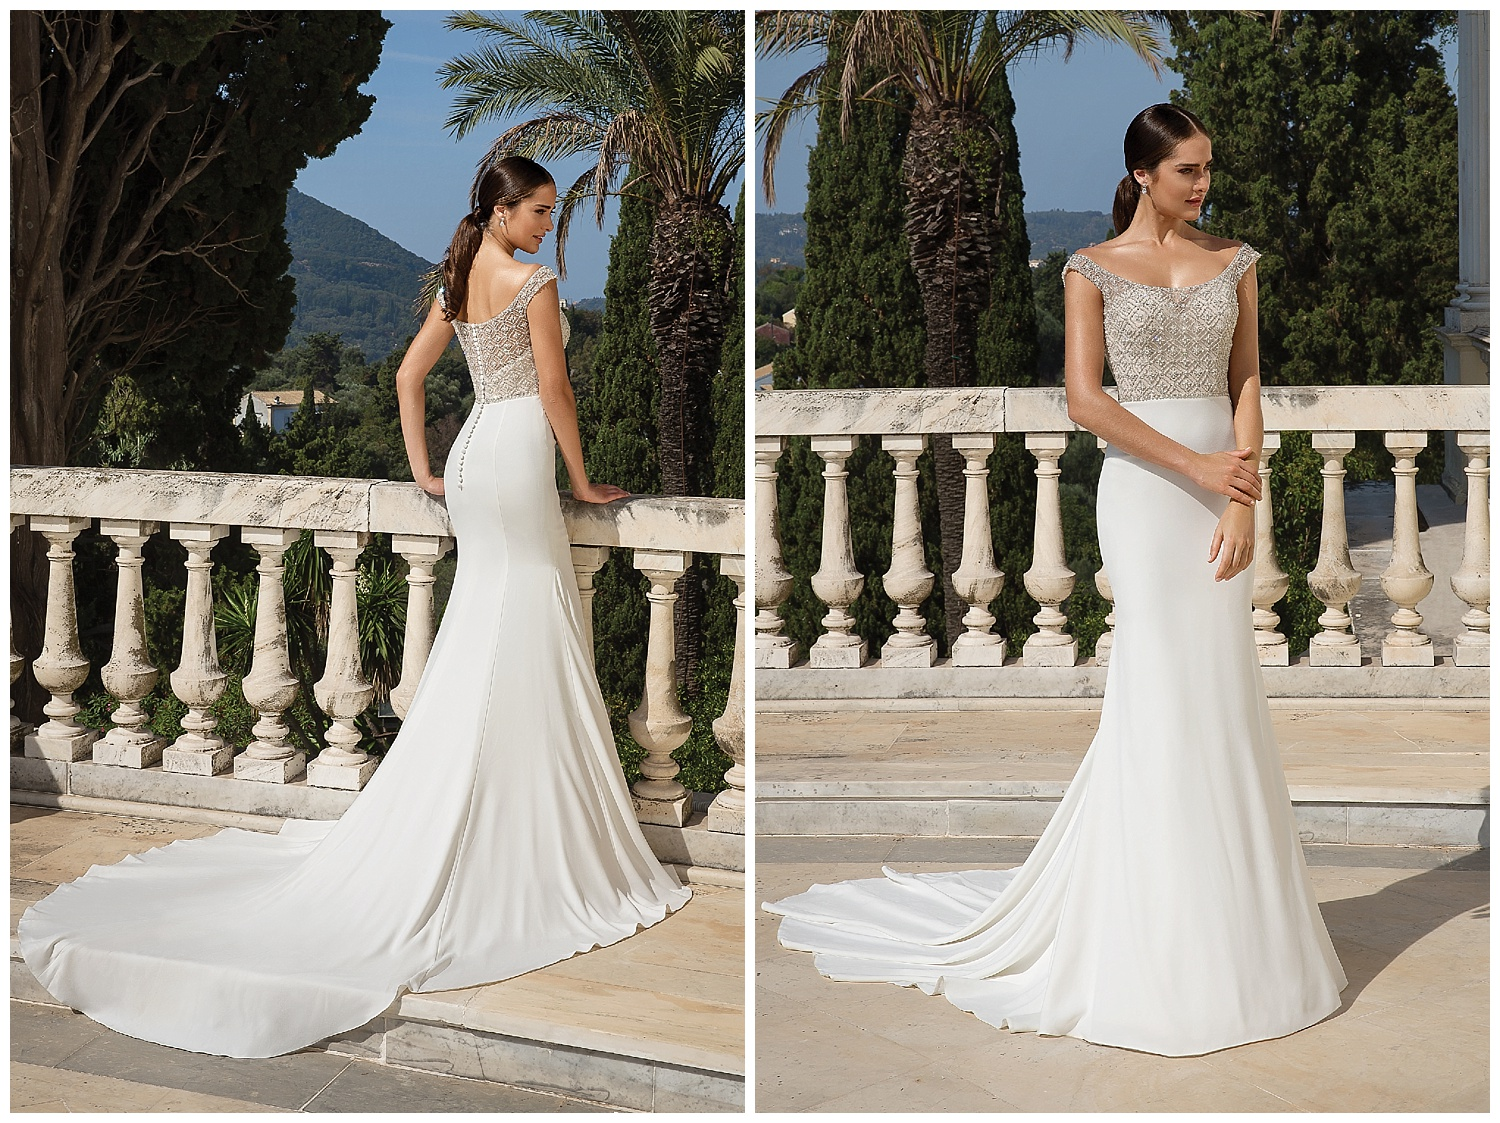 https://www.dropbox.com/preview/KRISTINE%20BLOG%20FILES%20AND%20IMAGES/Justin%20Alexander%20fall%202019%20bridal%20collection%20-stomped/justin-alexander-88083-beaded-fitted-wedding-dress-epiphany-boutique-carmel-california.jpg